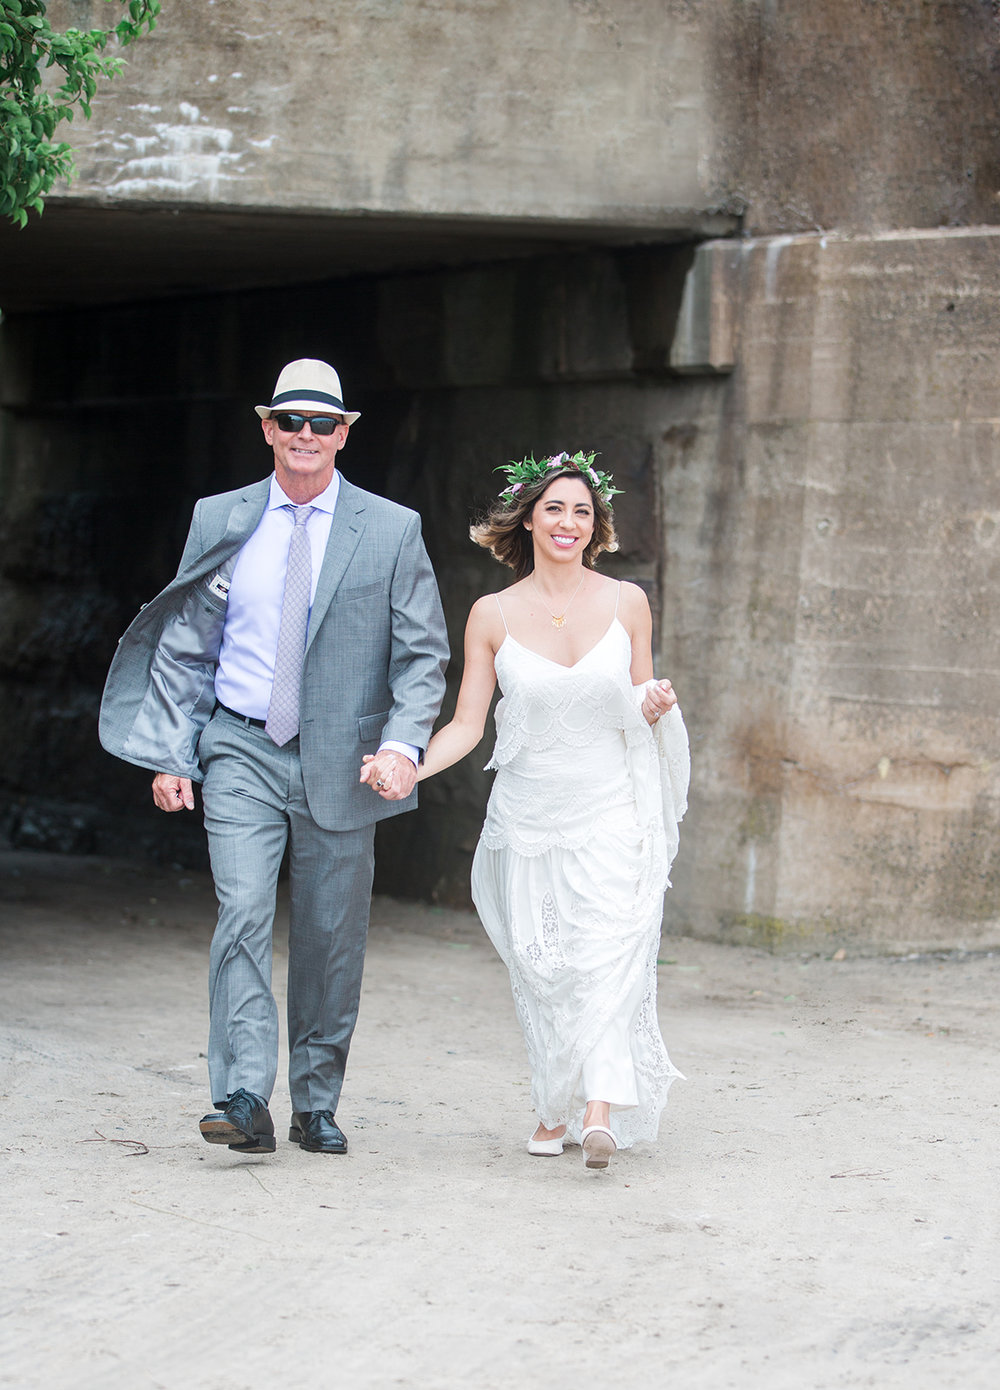 Father of the bride walks bride to her husband to be for first look! - Pearl Weddings & Events